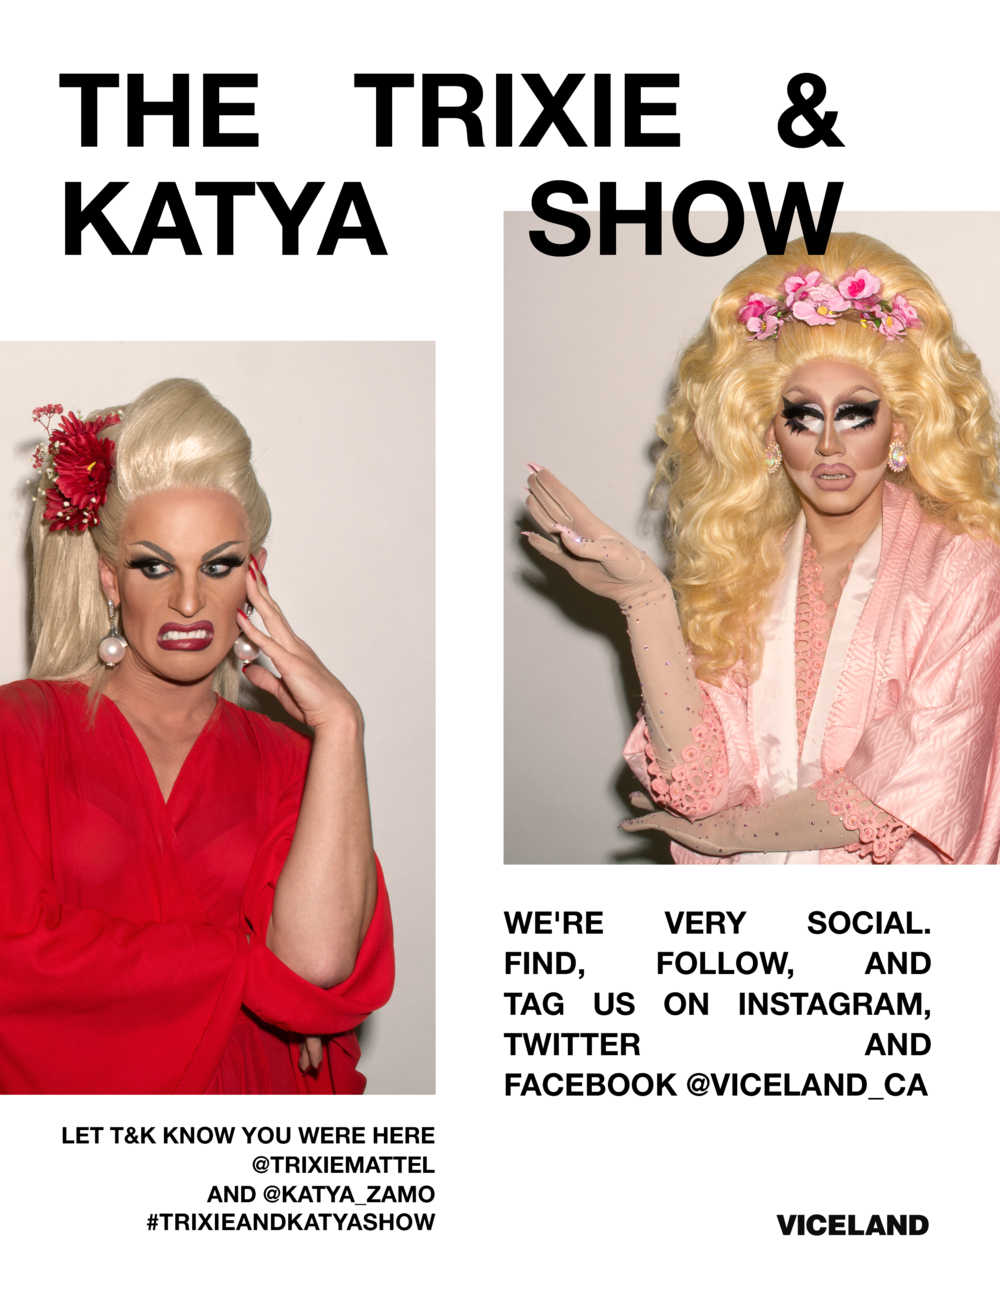 Social media promotional ad for a  Trixie & Katya  screening.